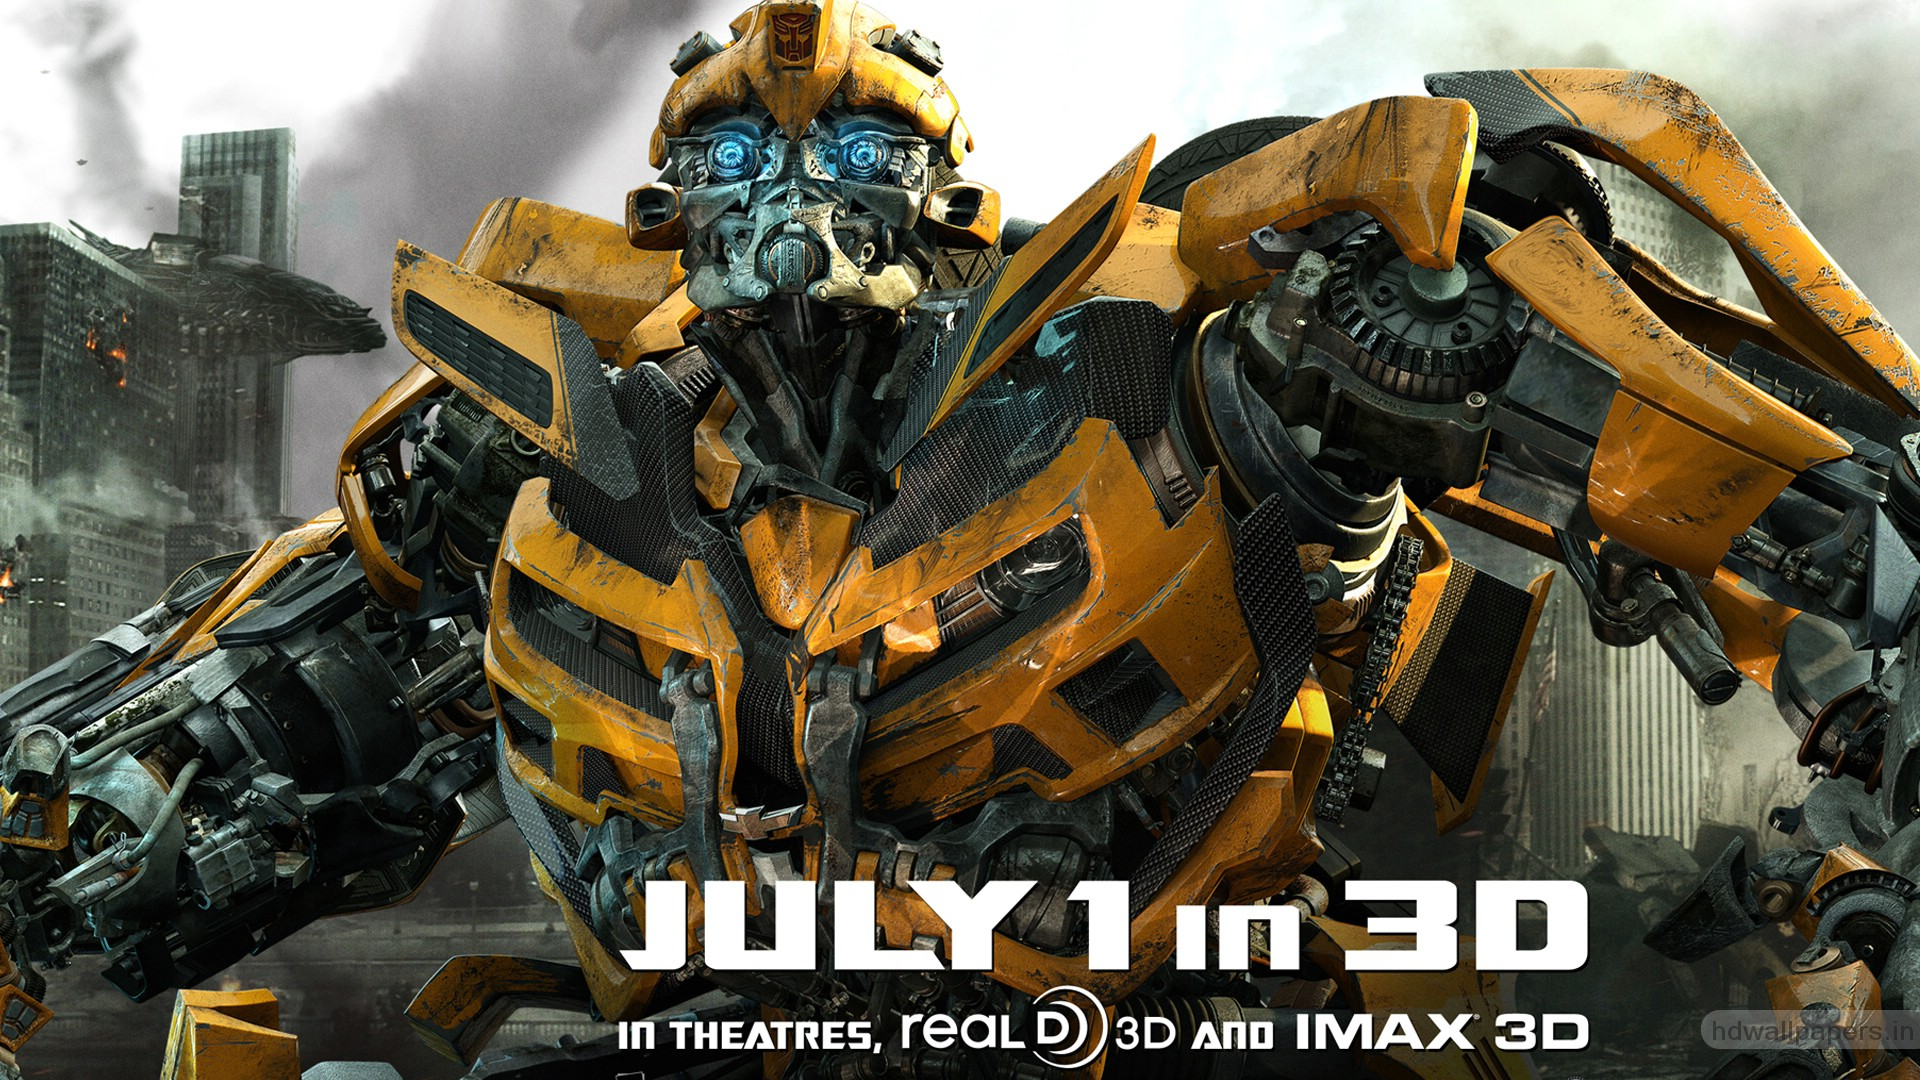 Bumblebee in New Transformers 3